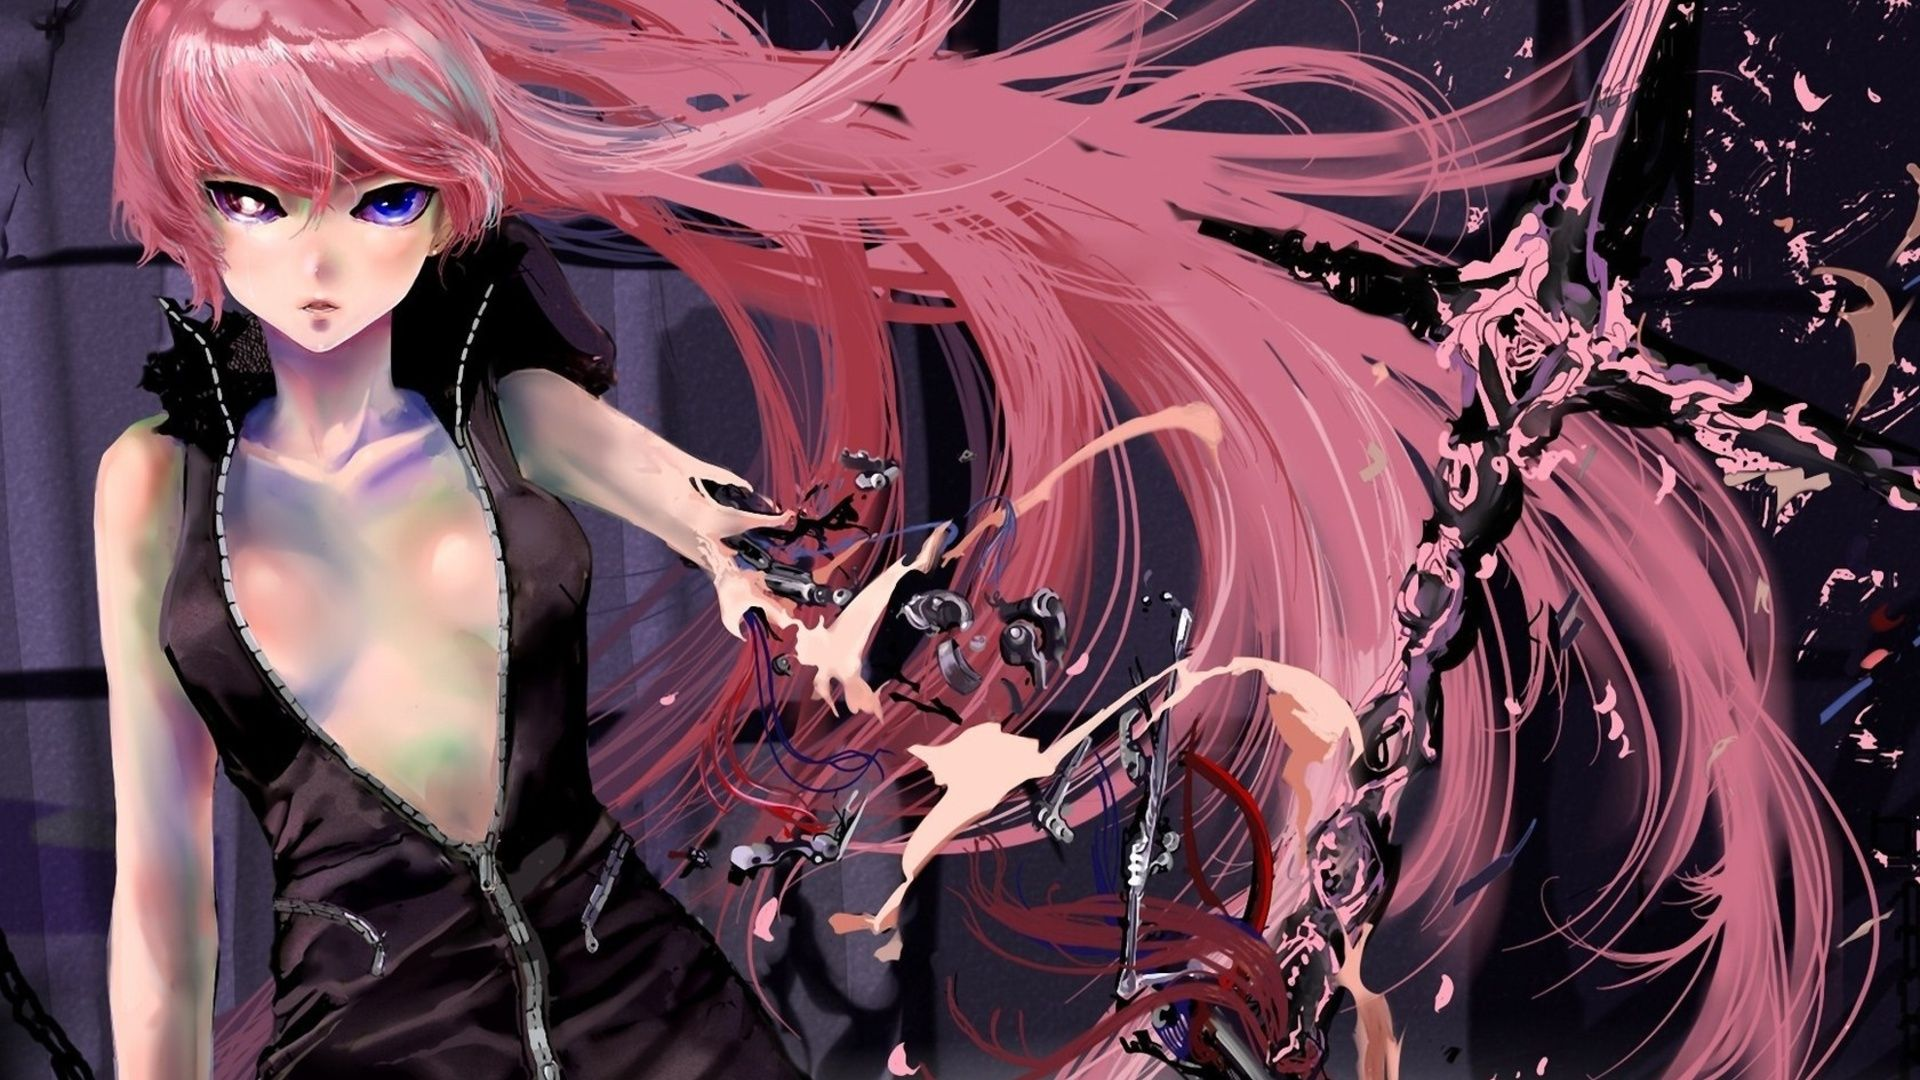 Megurine Luka Art Military